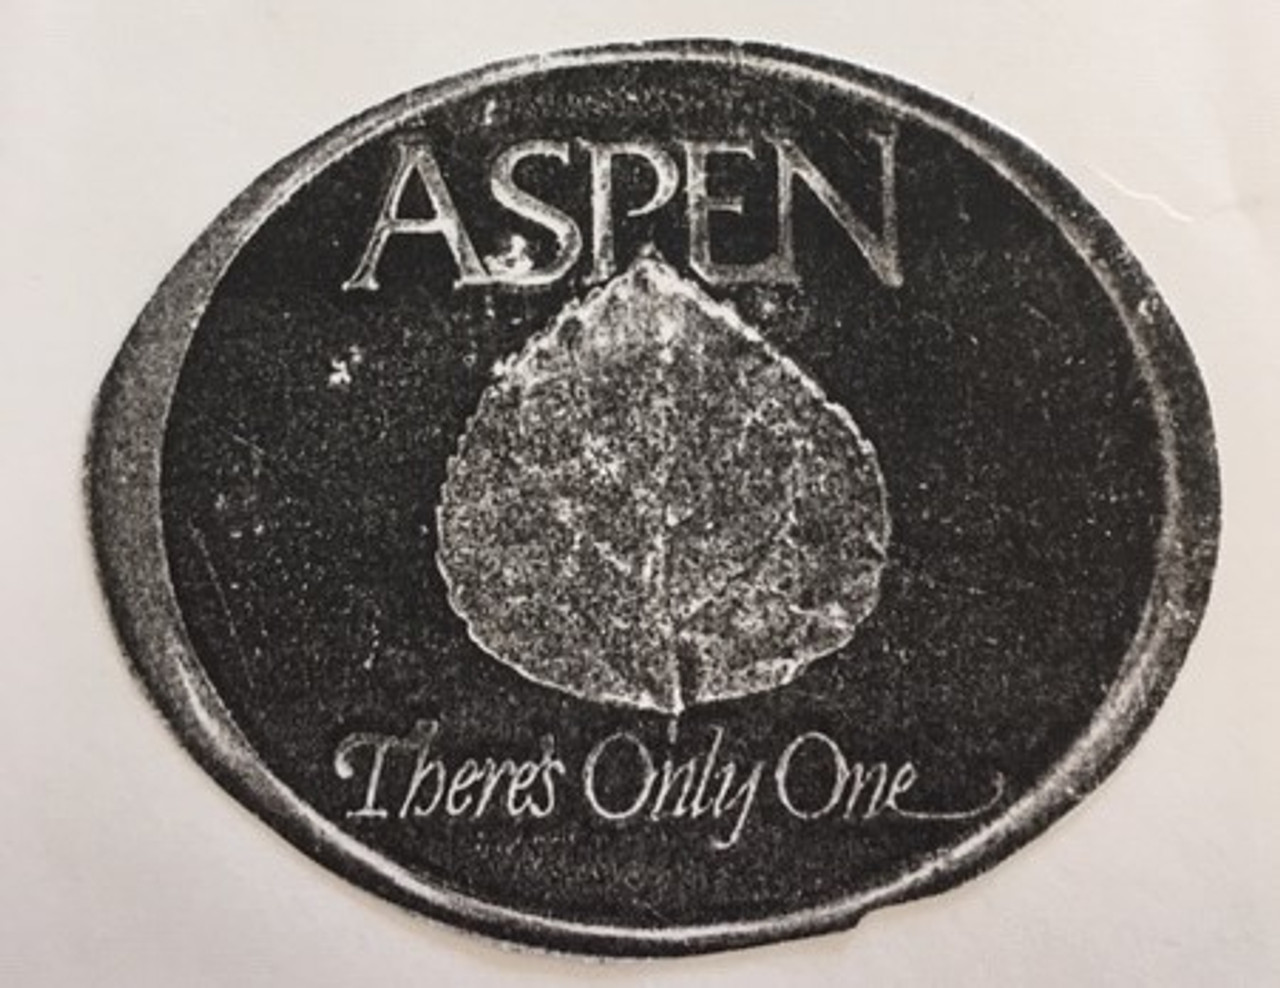 Aspen There's Only One Buckle